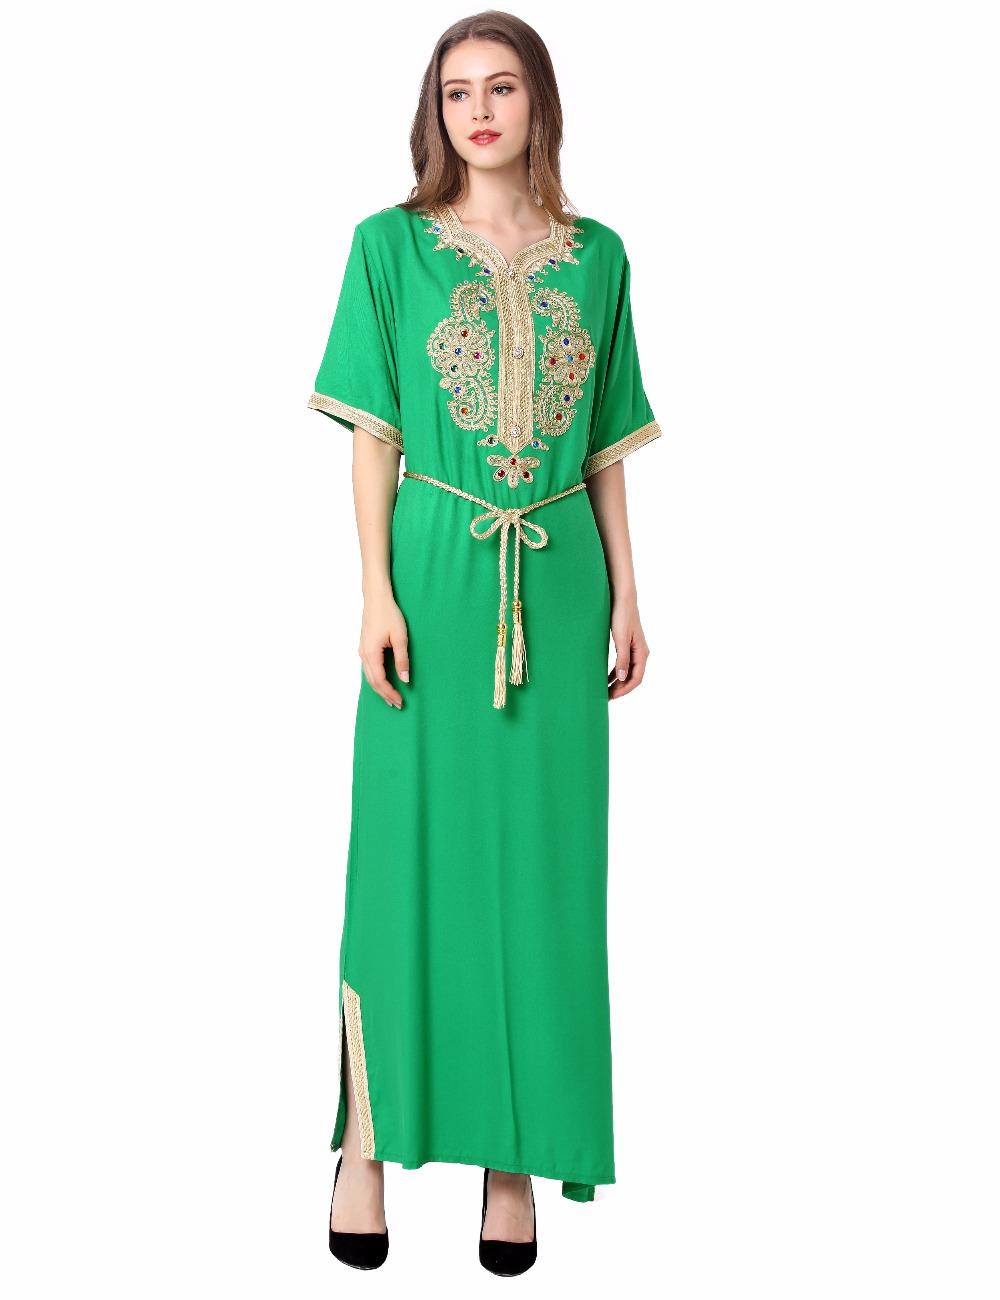 Turkish clothes online shopping site